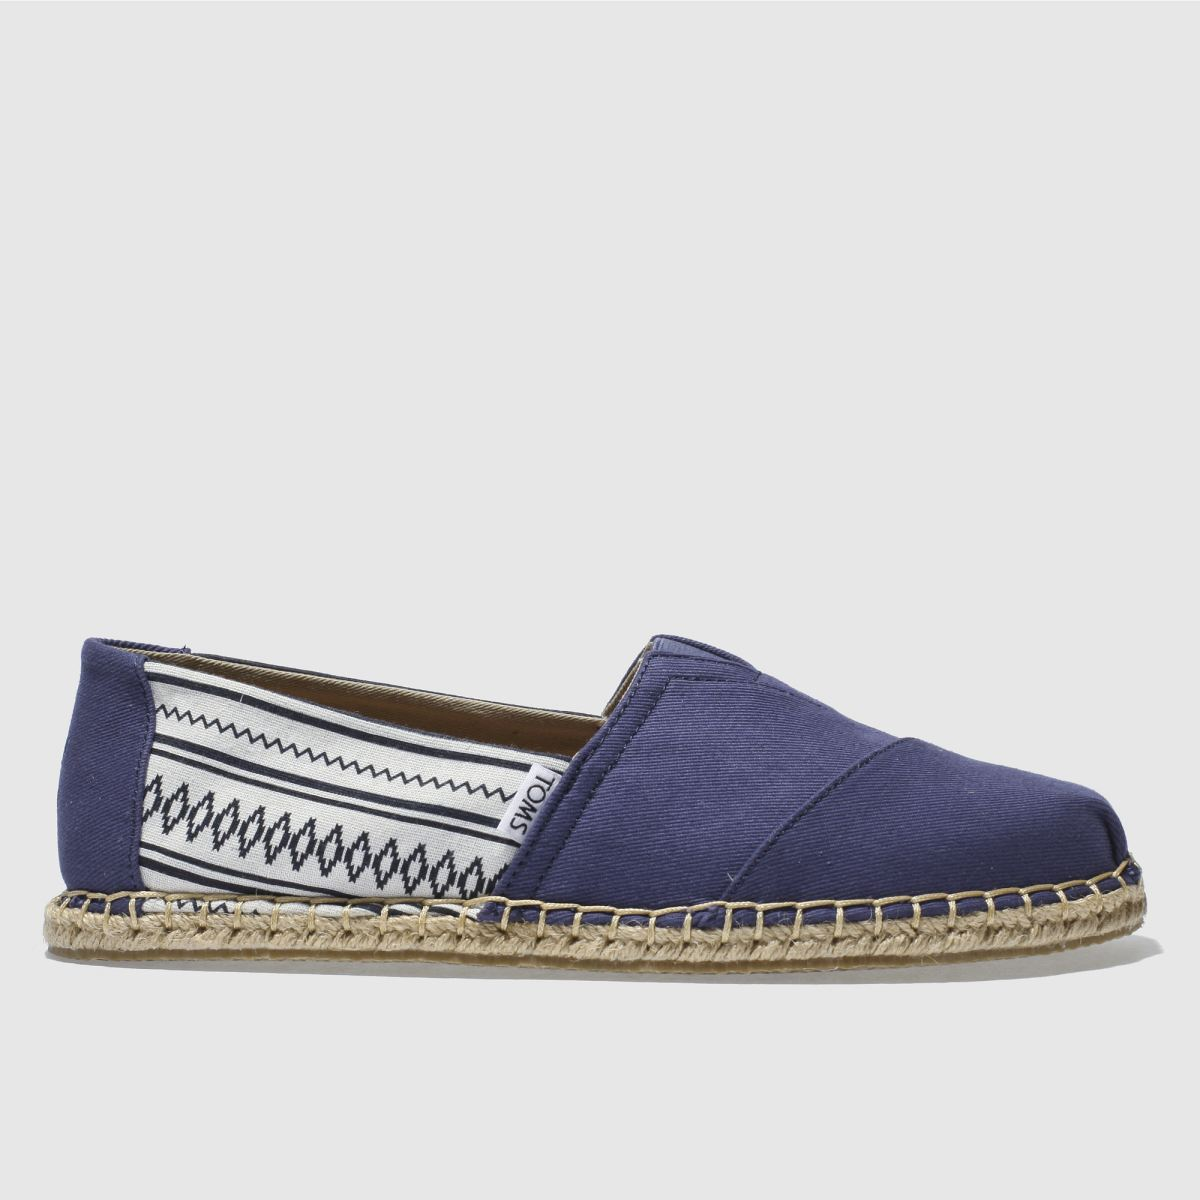 Toms Navy & White Classic Shoes